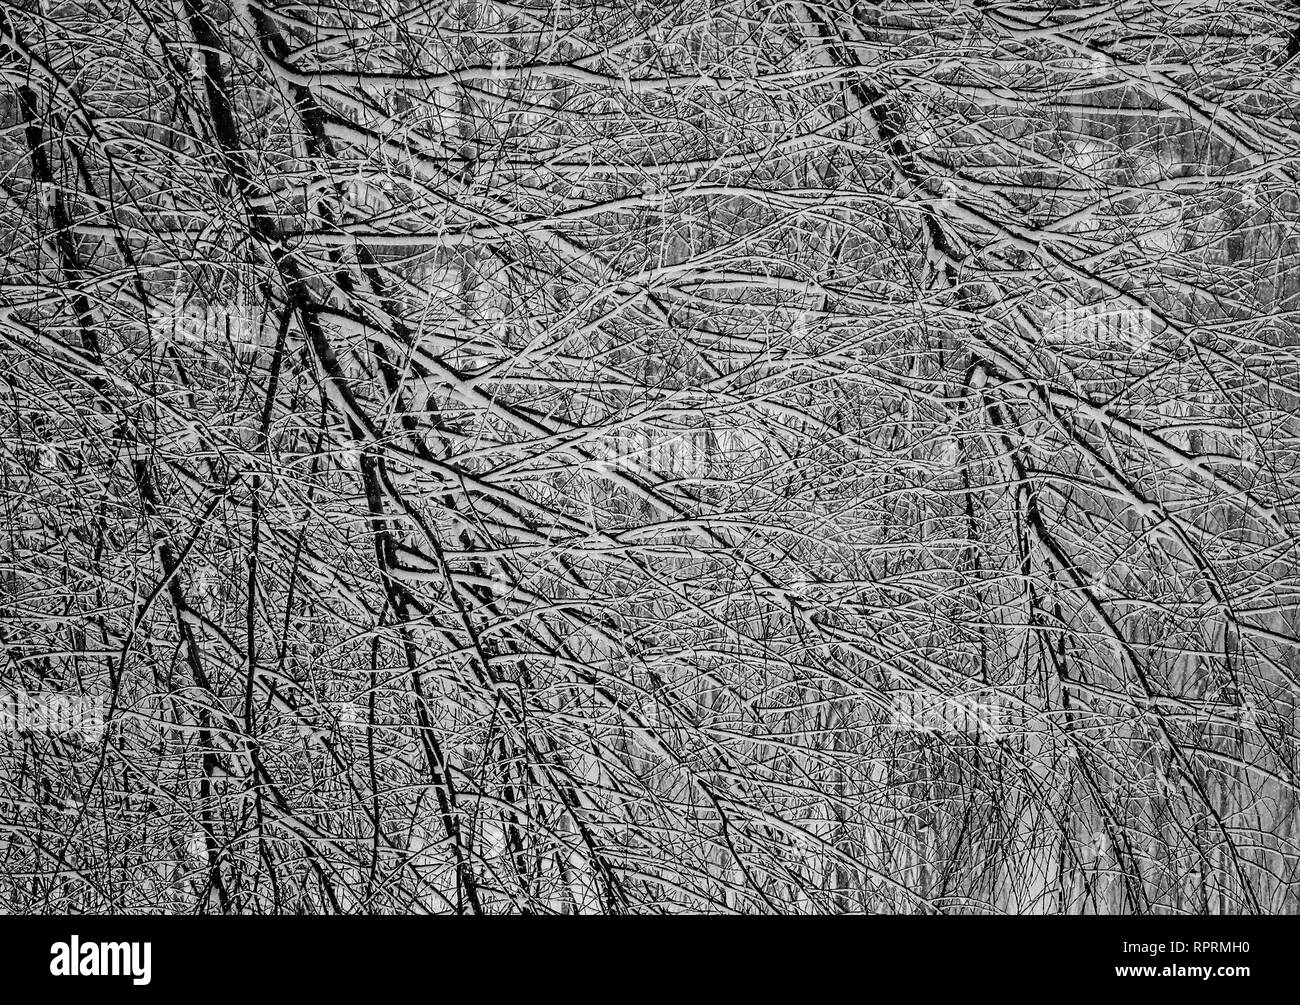 Abstract Branches - Tree Fine Art Photography - Stock Image